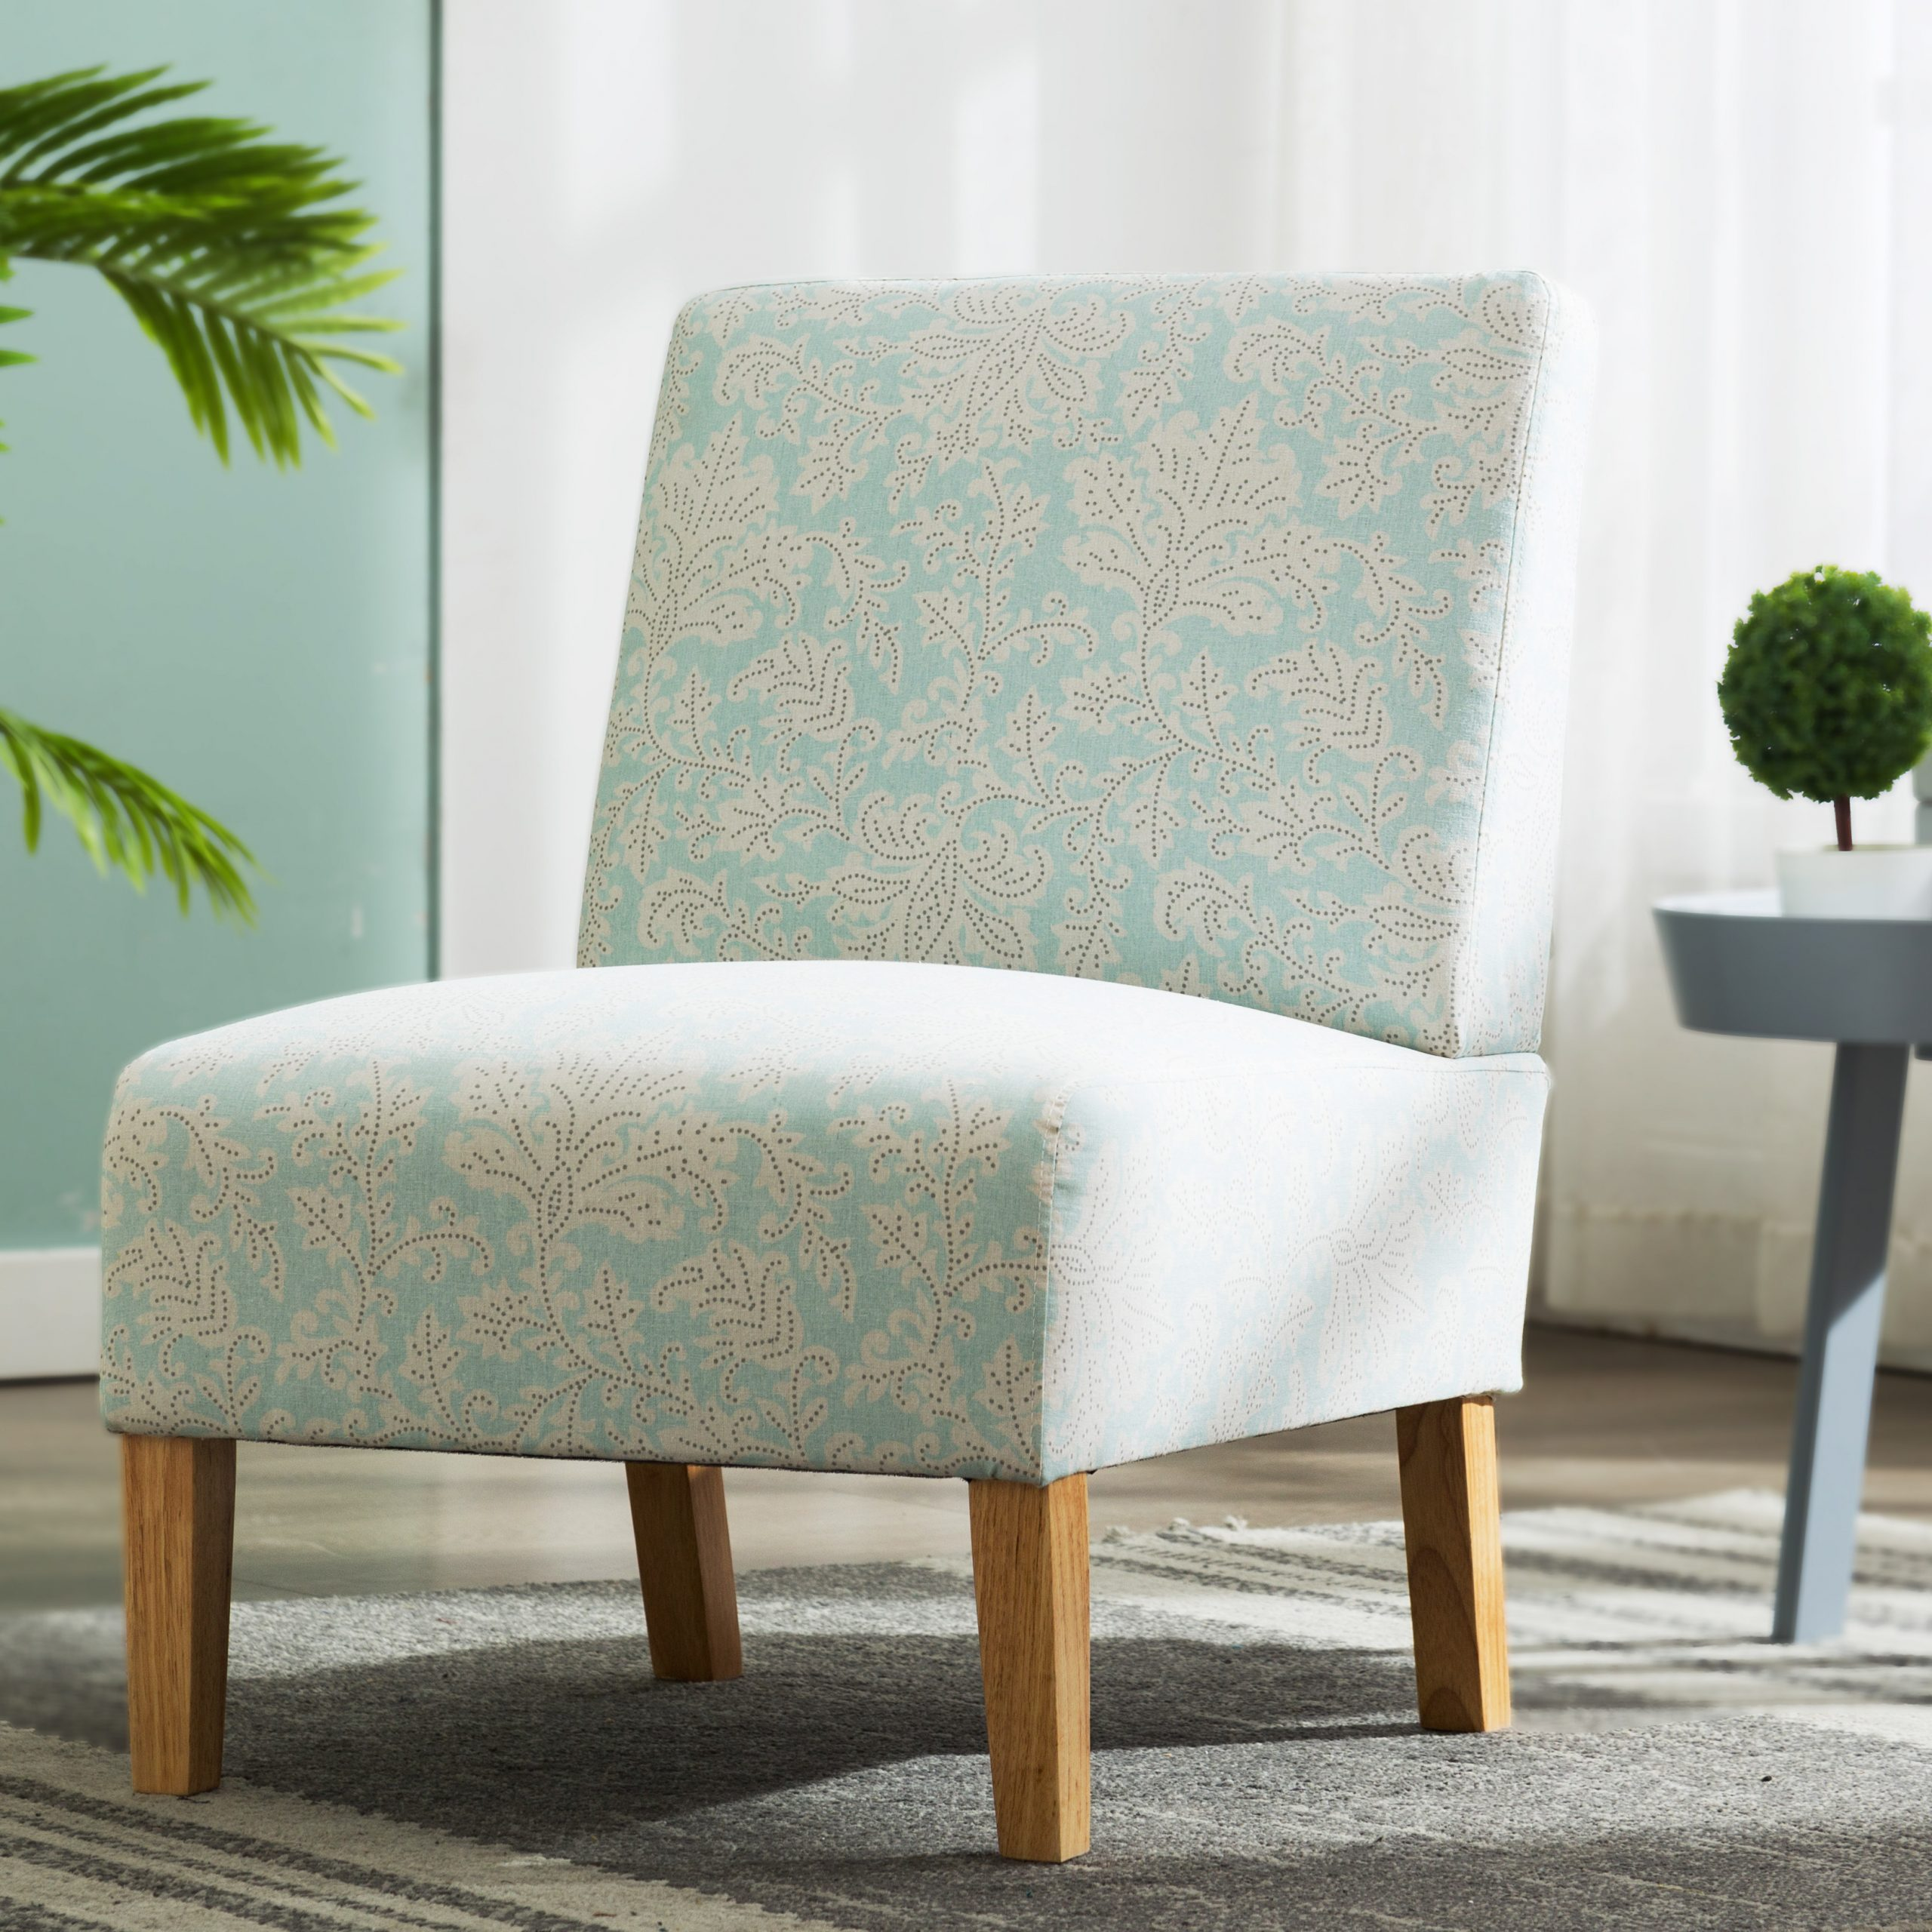 Most Up To Date Armless Chairs, Upholstered Armless Accent Fabric Chair With Wood Legs, Comfy Single Sofa Modern Printed Accent Chair For Living Room, Bedroom Intended For Armless Upholstered Slipper Chairs (View 19 of 20)